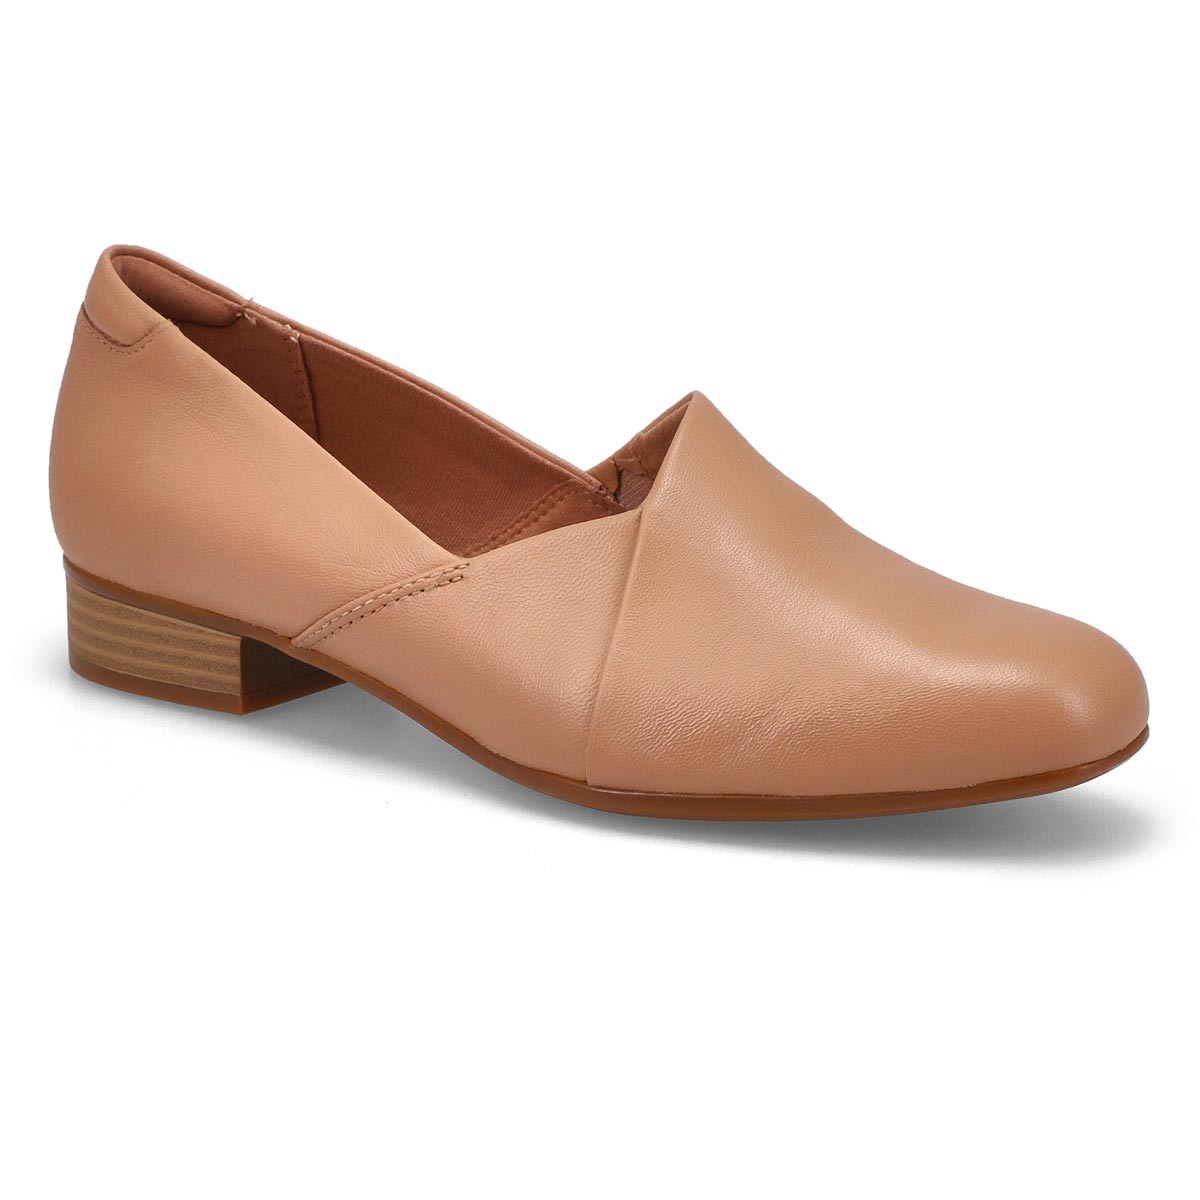 Lds Juliet Palm praline dress heel